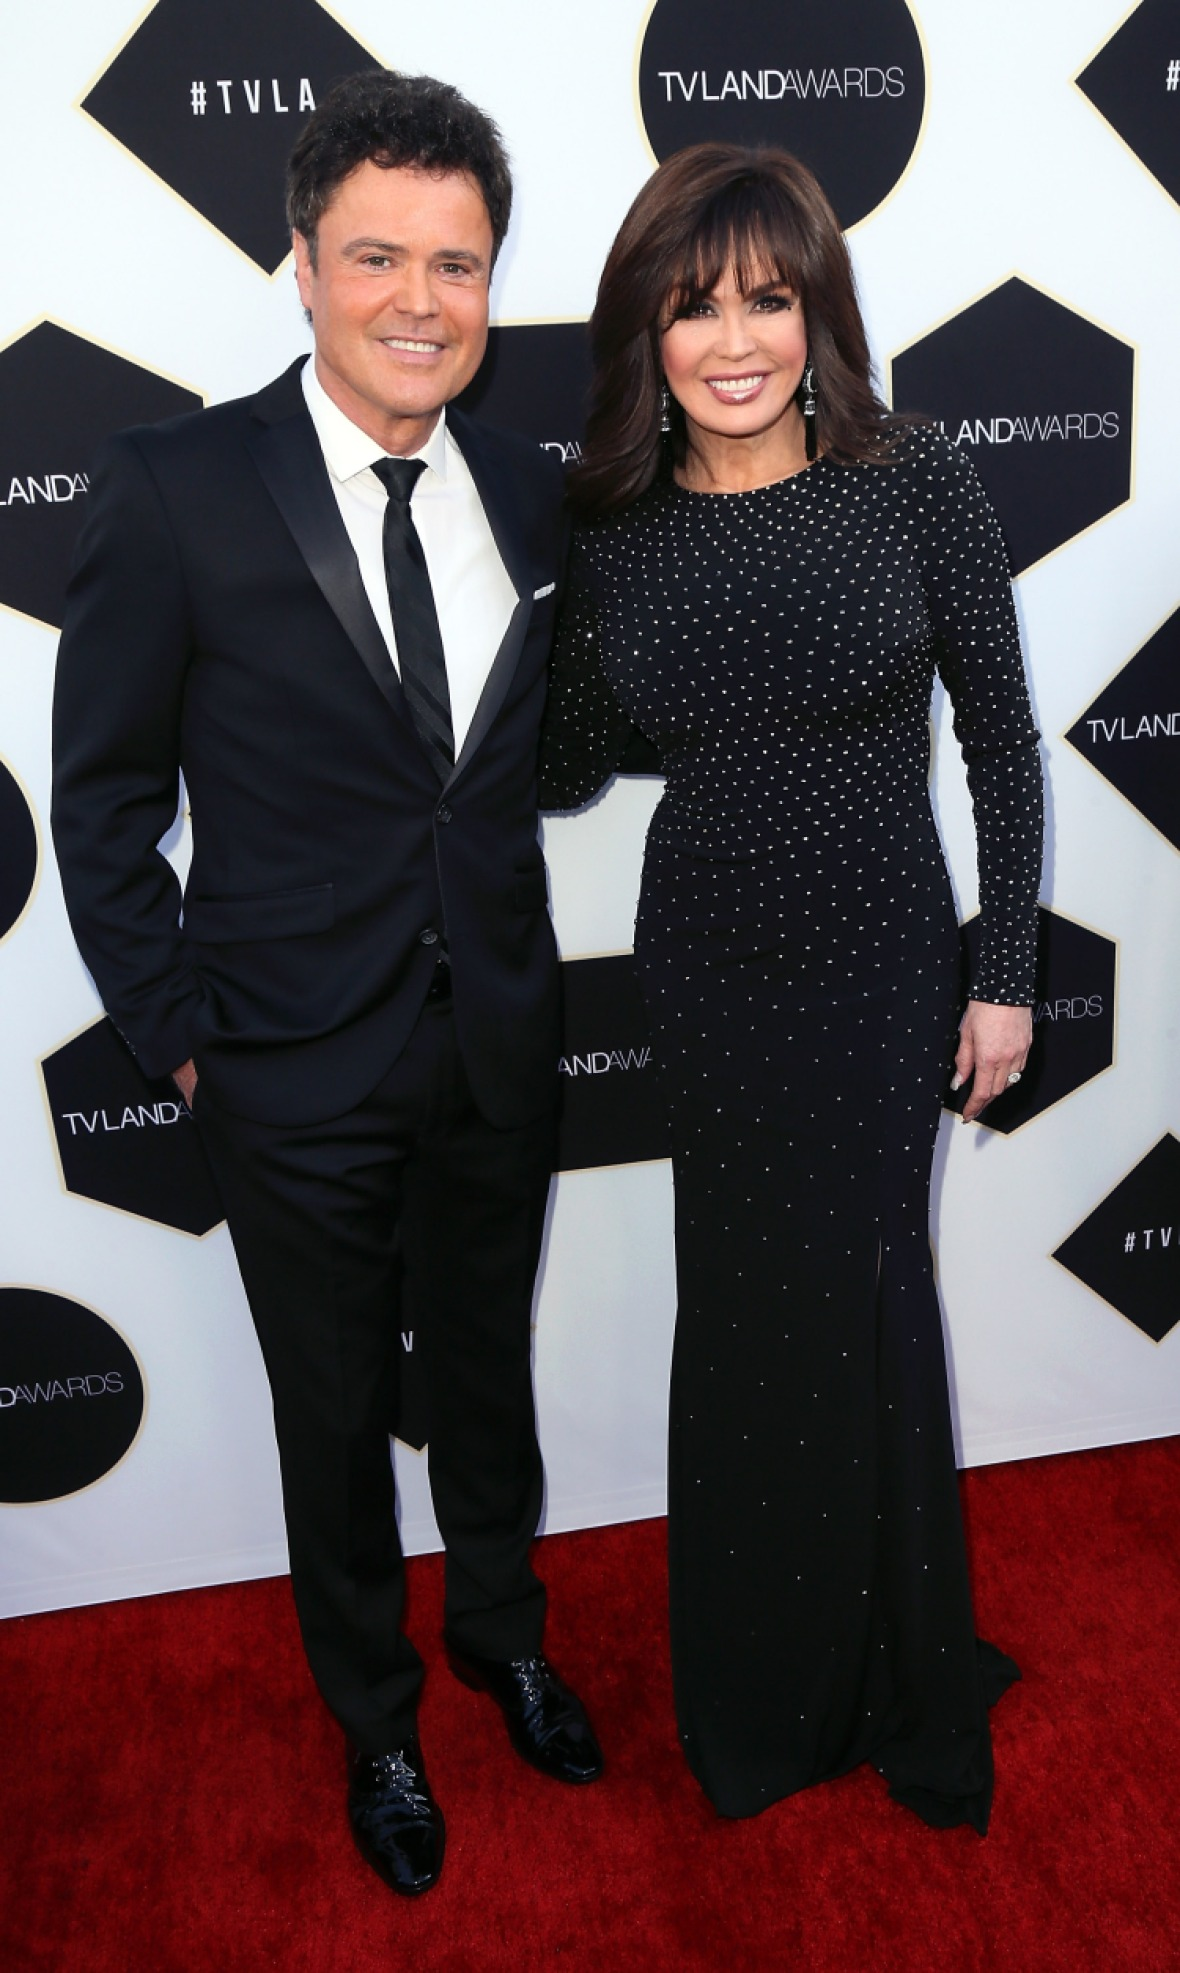 marie and her brother donny. (photo credit: getty images)